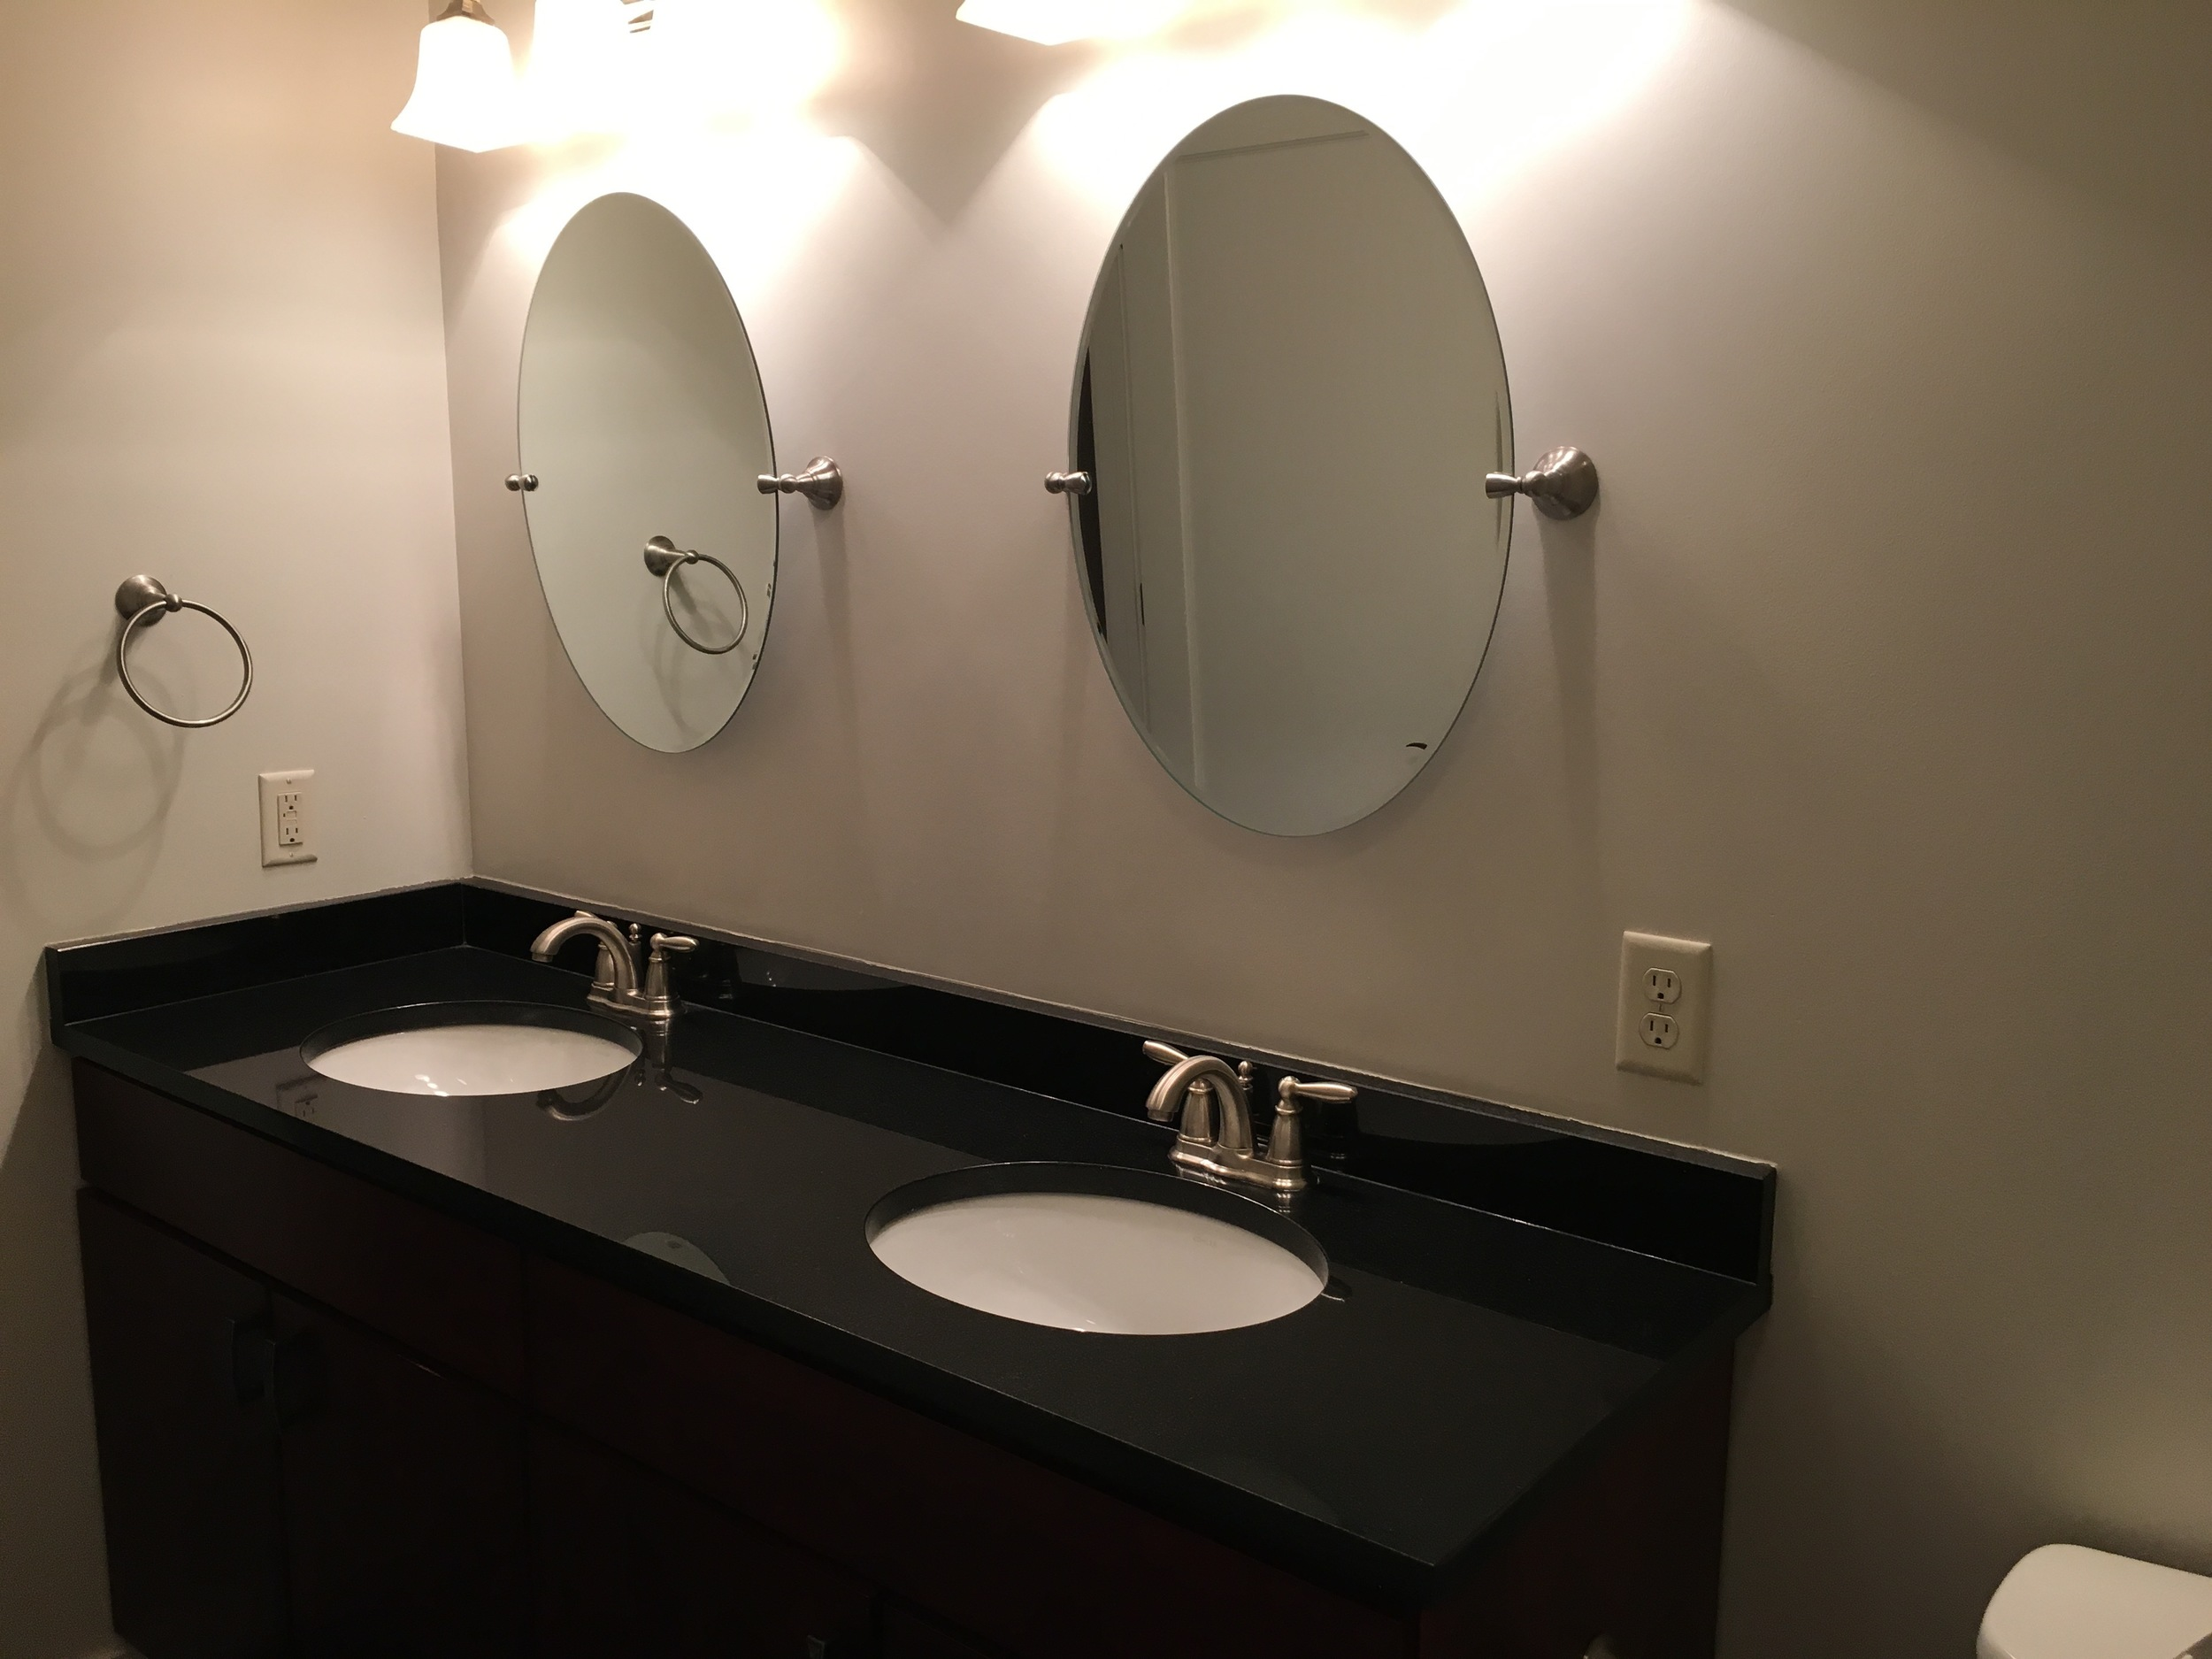 A sink for each of us! (I use both...)